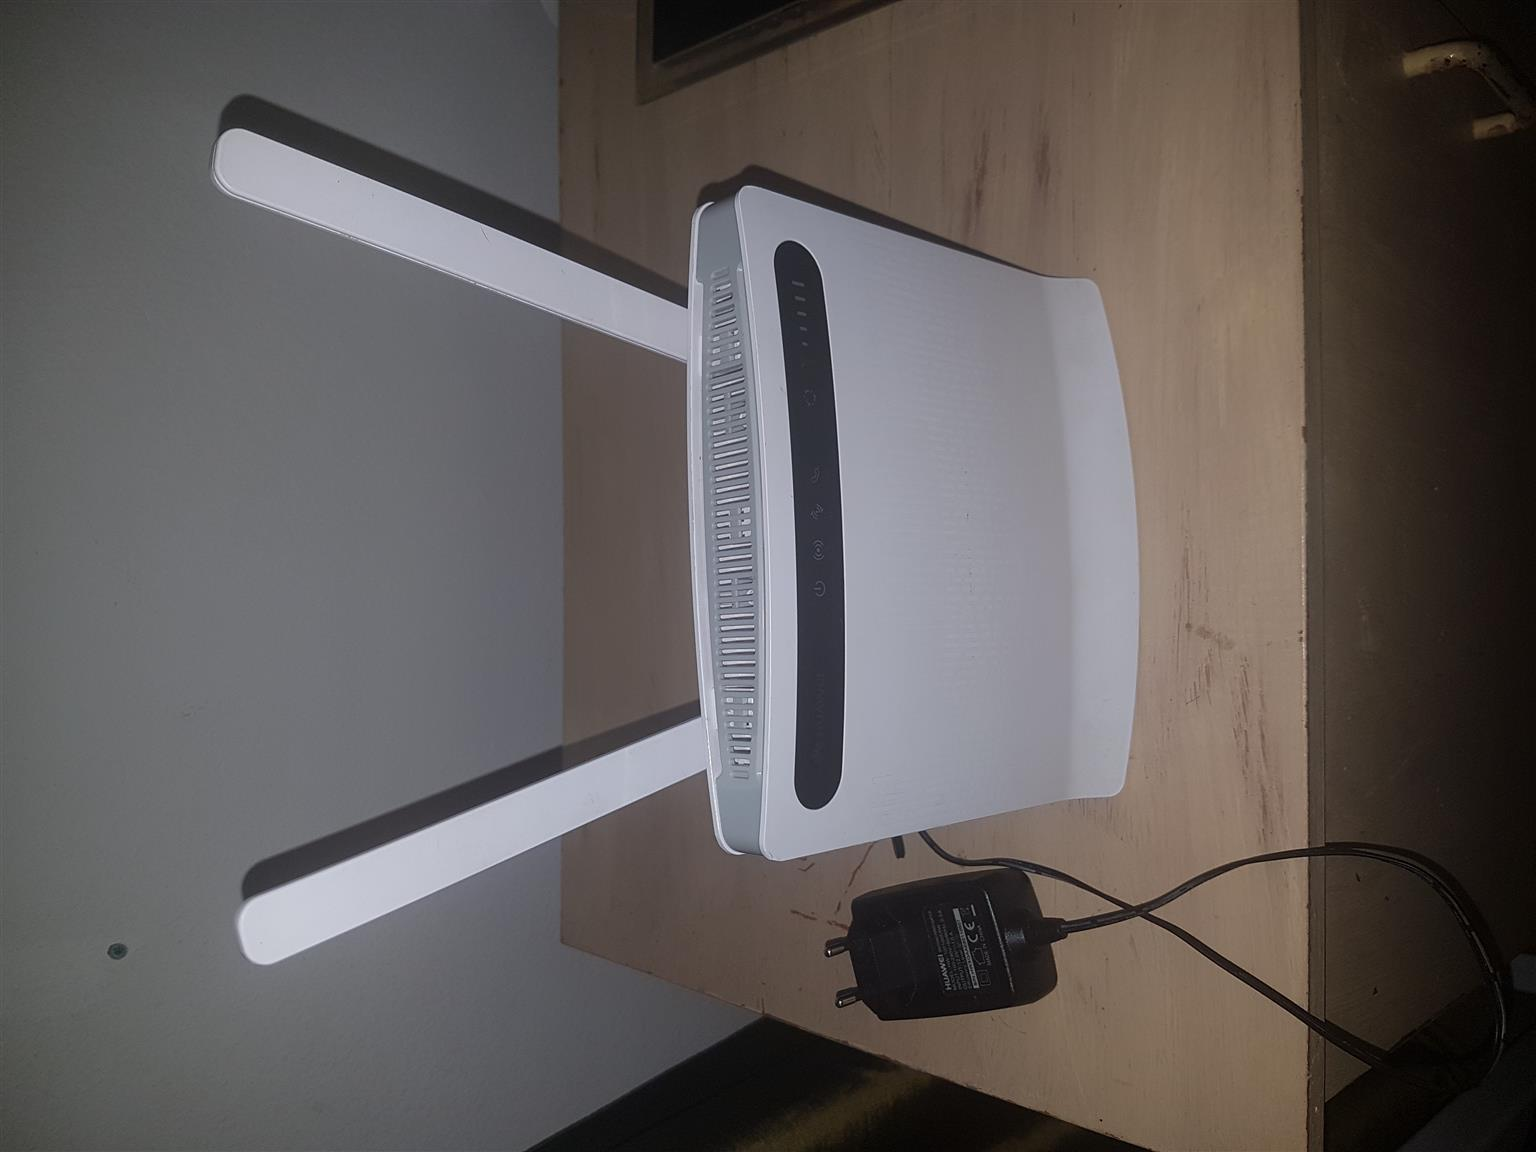 LTE Huawei Router